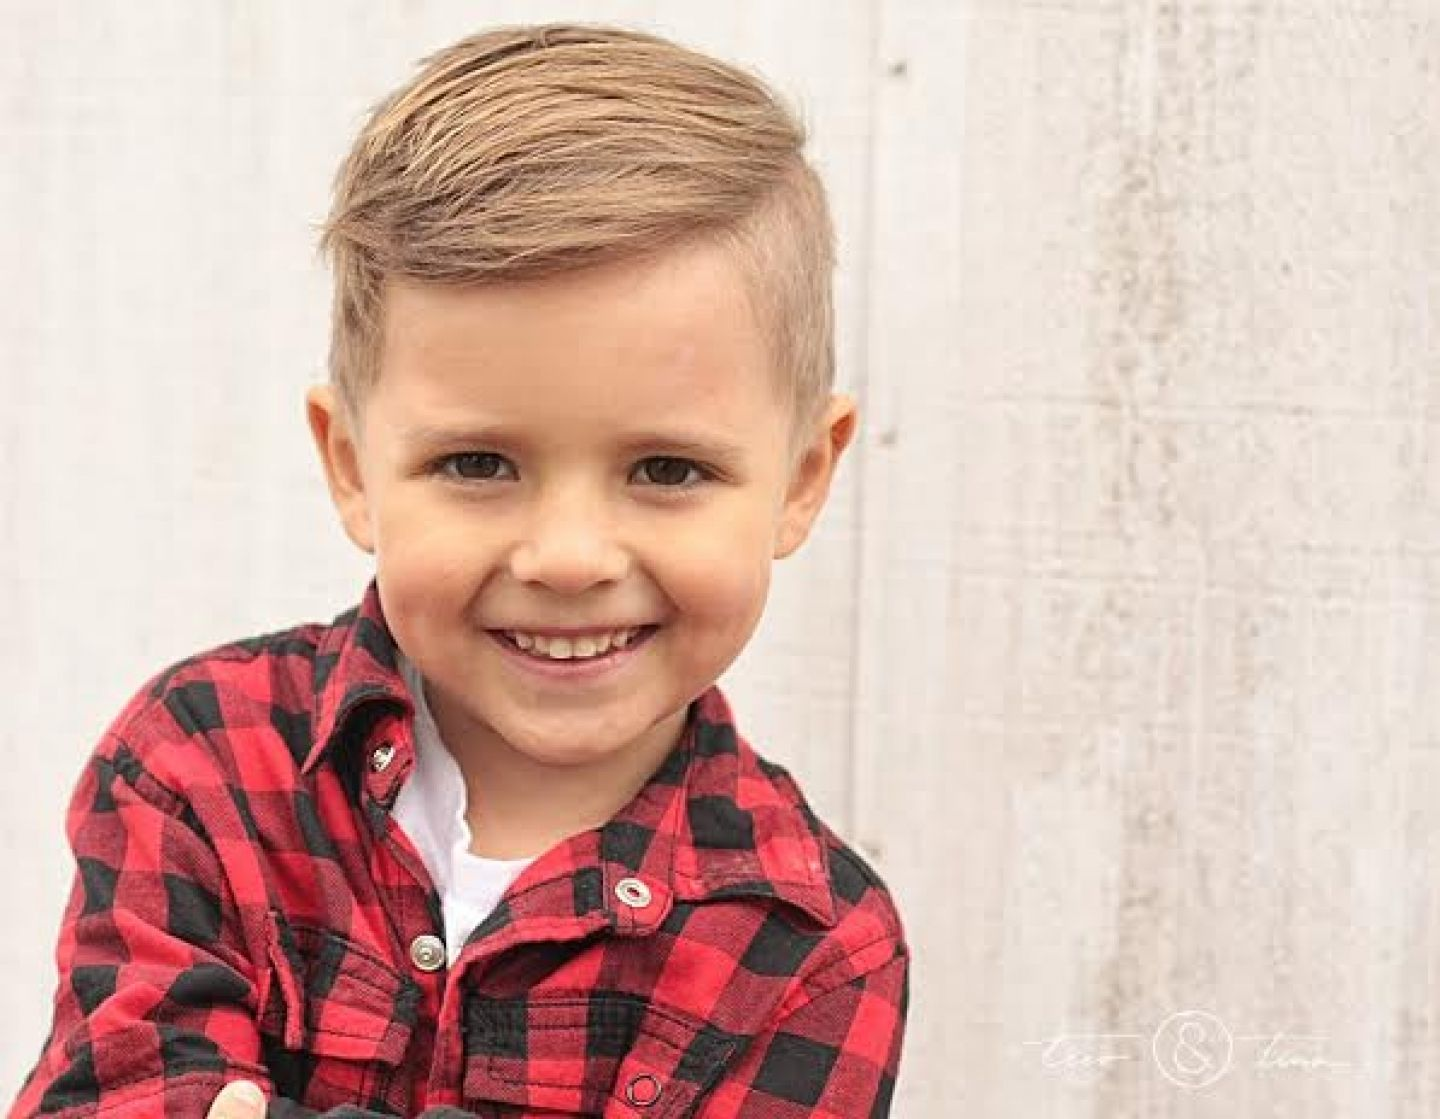 33 trending boys haircuts for inspirational hairstyles | ben